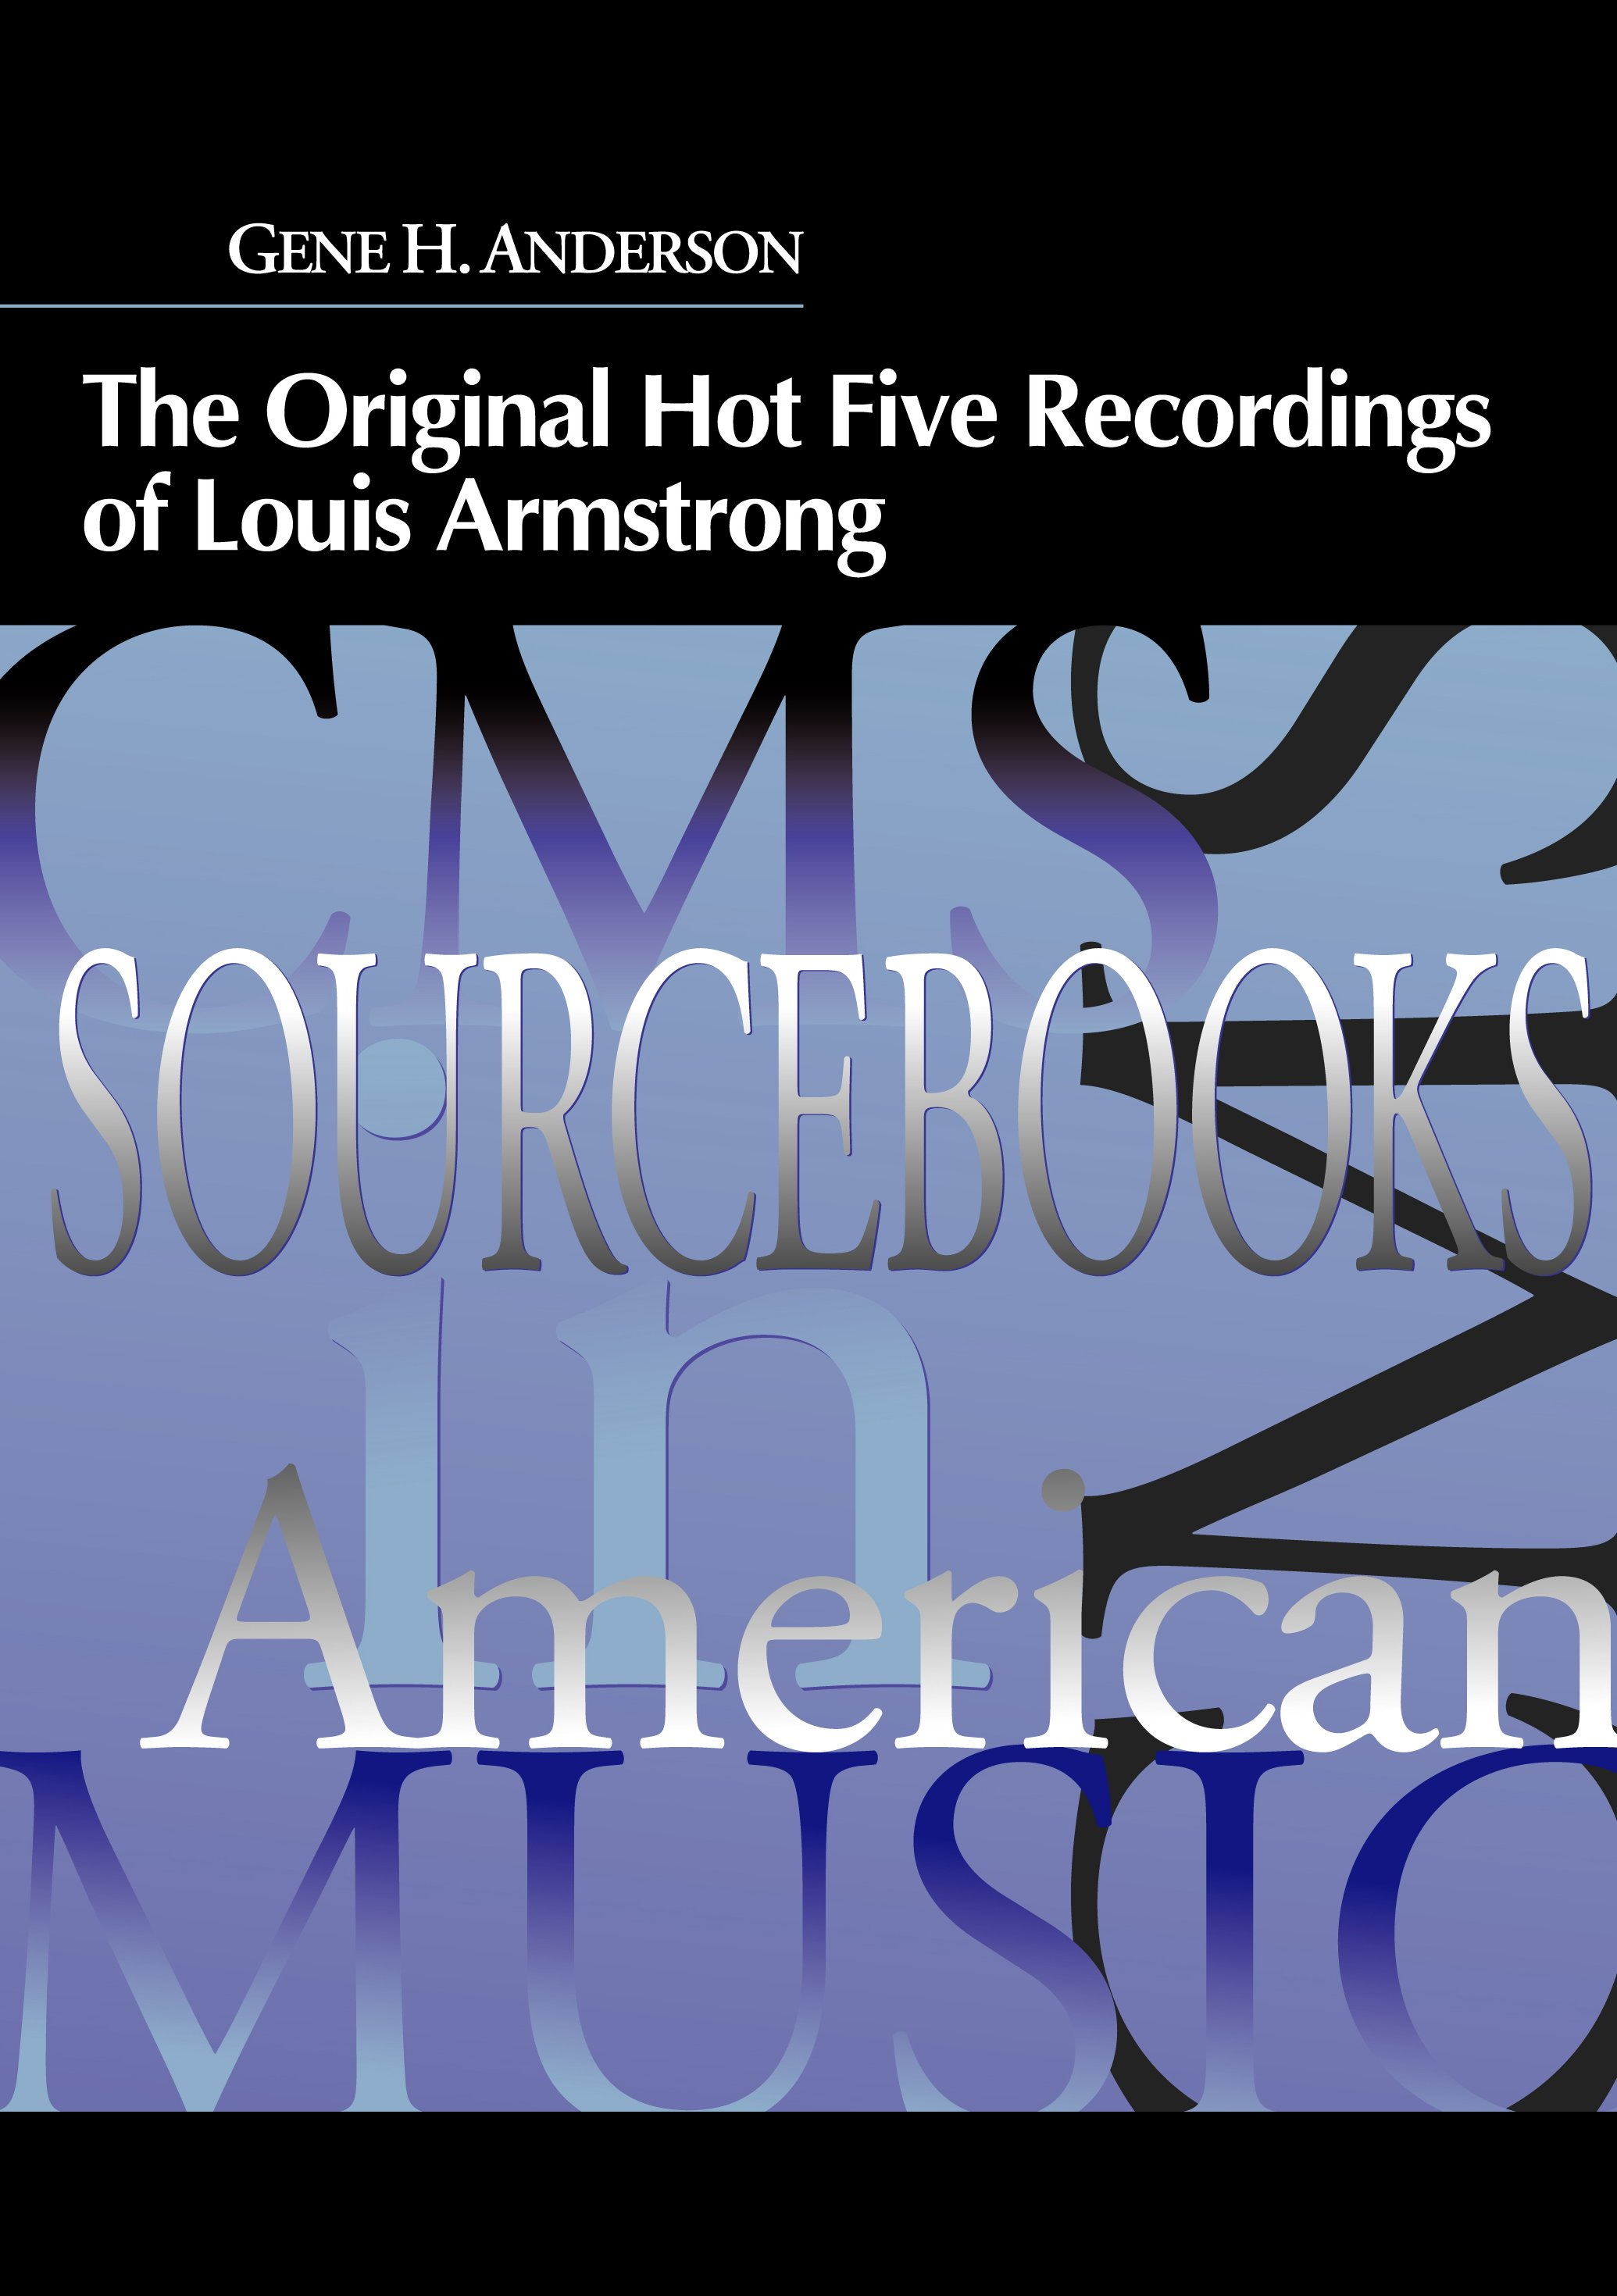 The Original Hot Five Recordings of Louis Armstrong